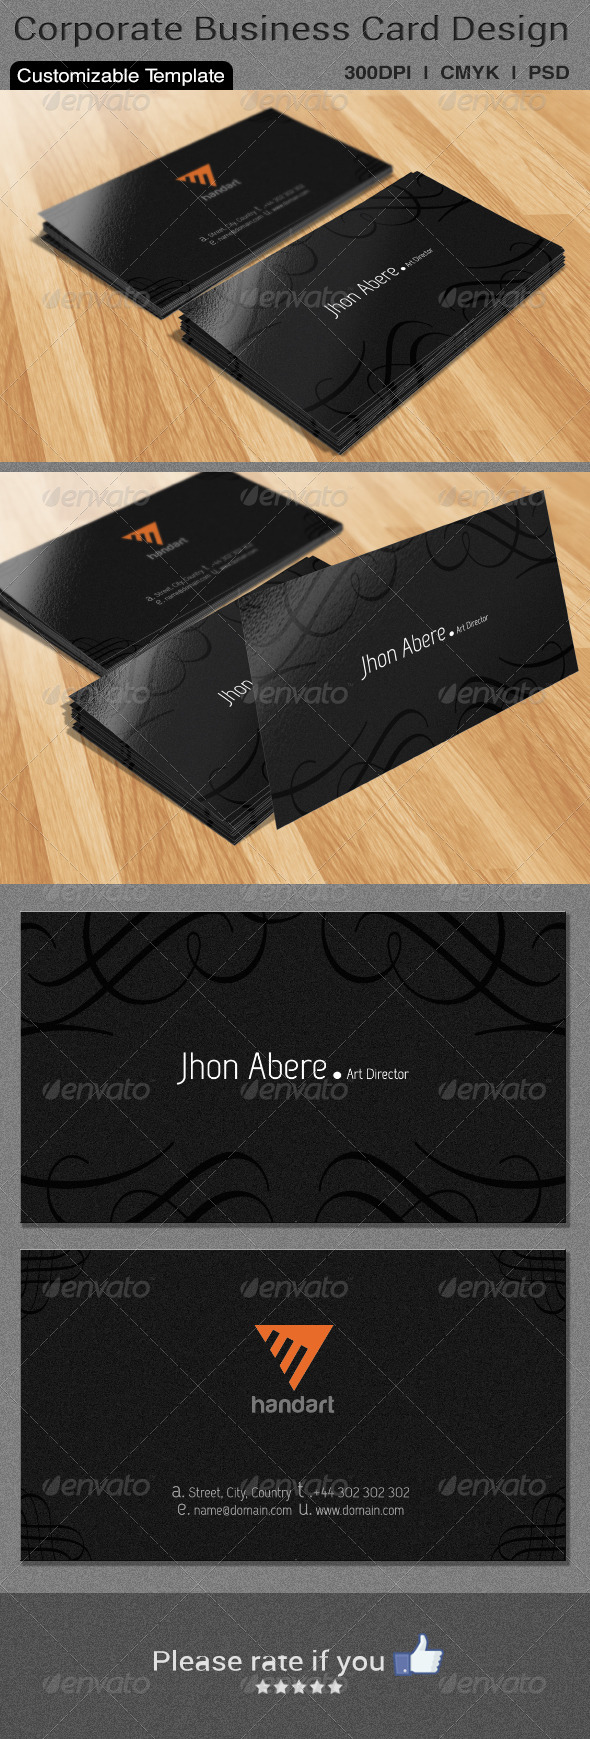 Classic Business Card Design - Corporate Business Cards